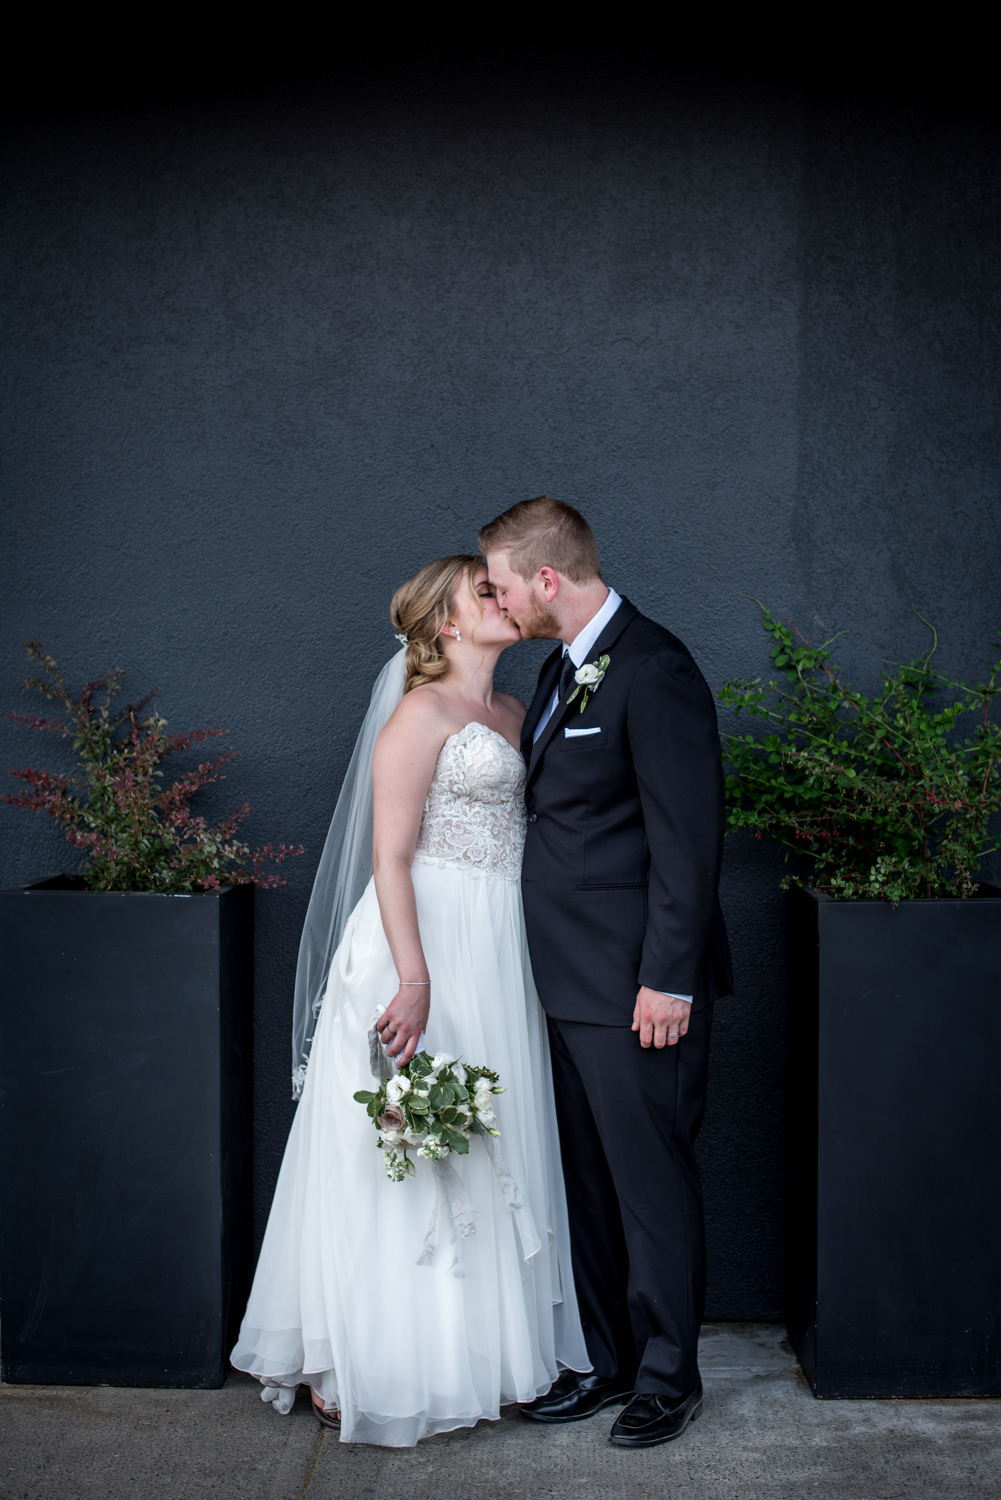 Downtown-Kamloops-Wedding-63.jpg